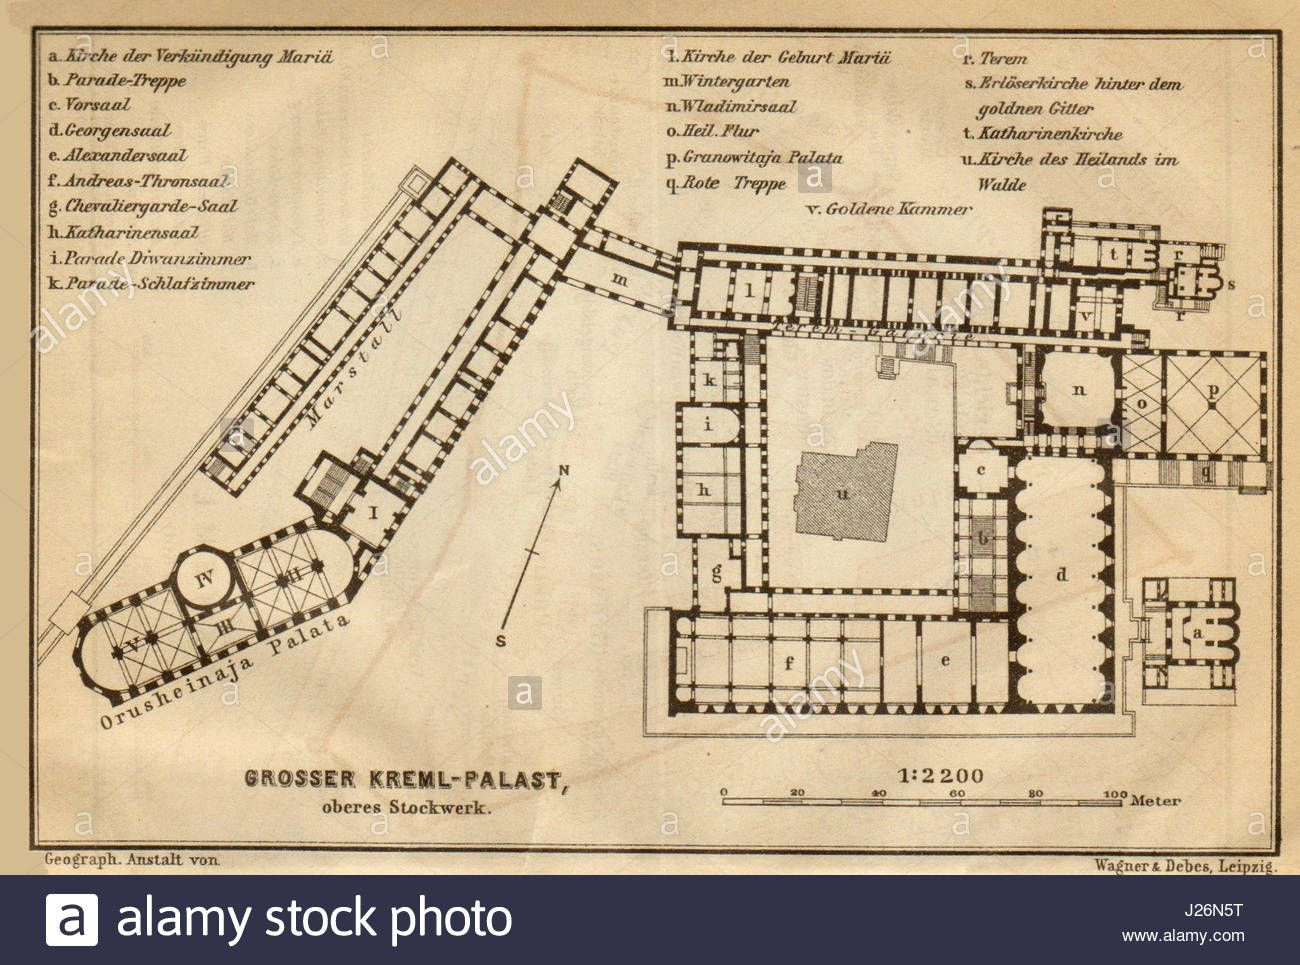 Image Result For Grand Kremlin Palace Floor Plan Floor Plans How To Plan Kremlin Palace